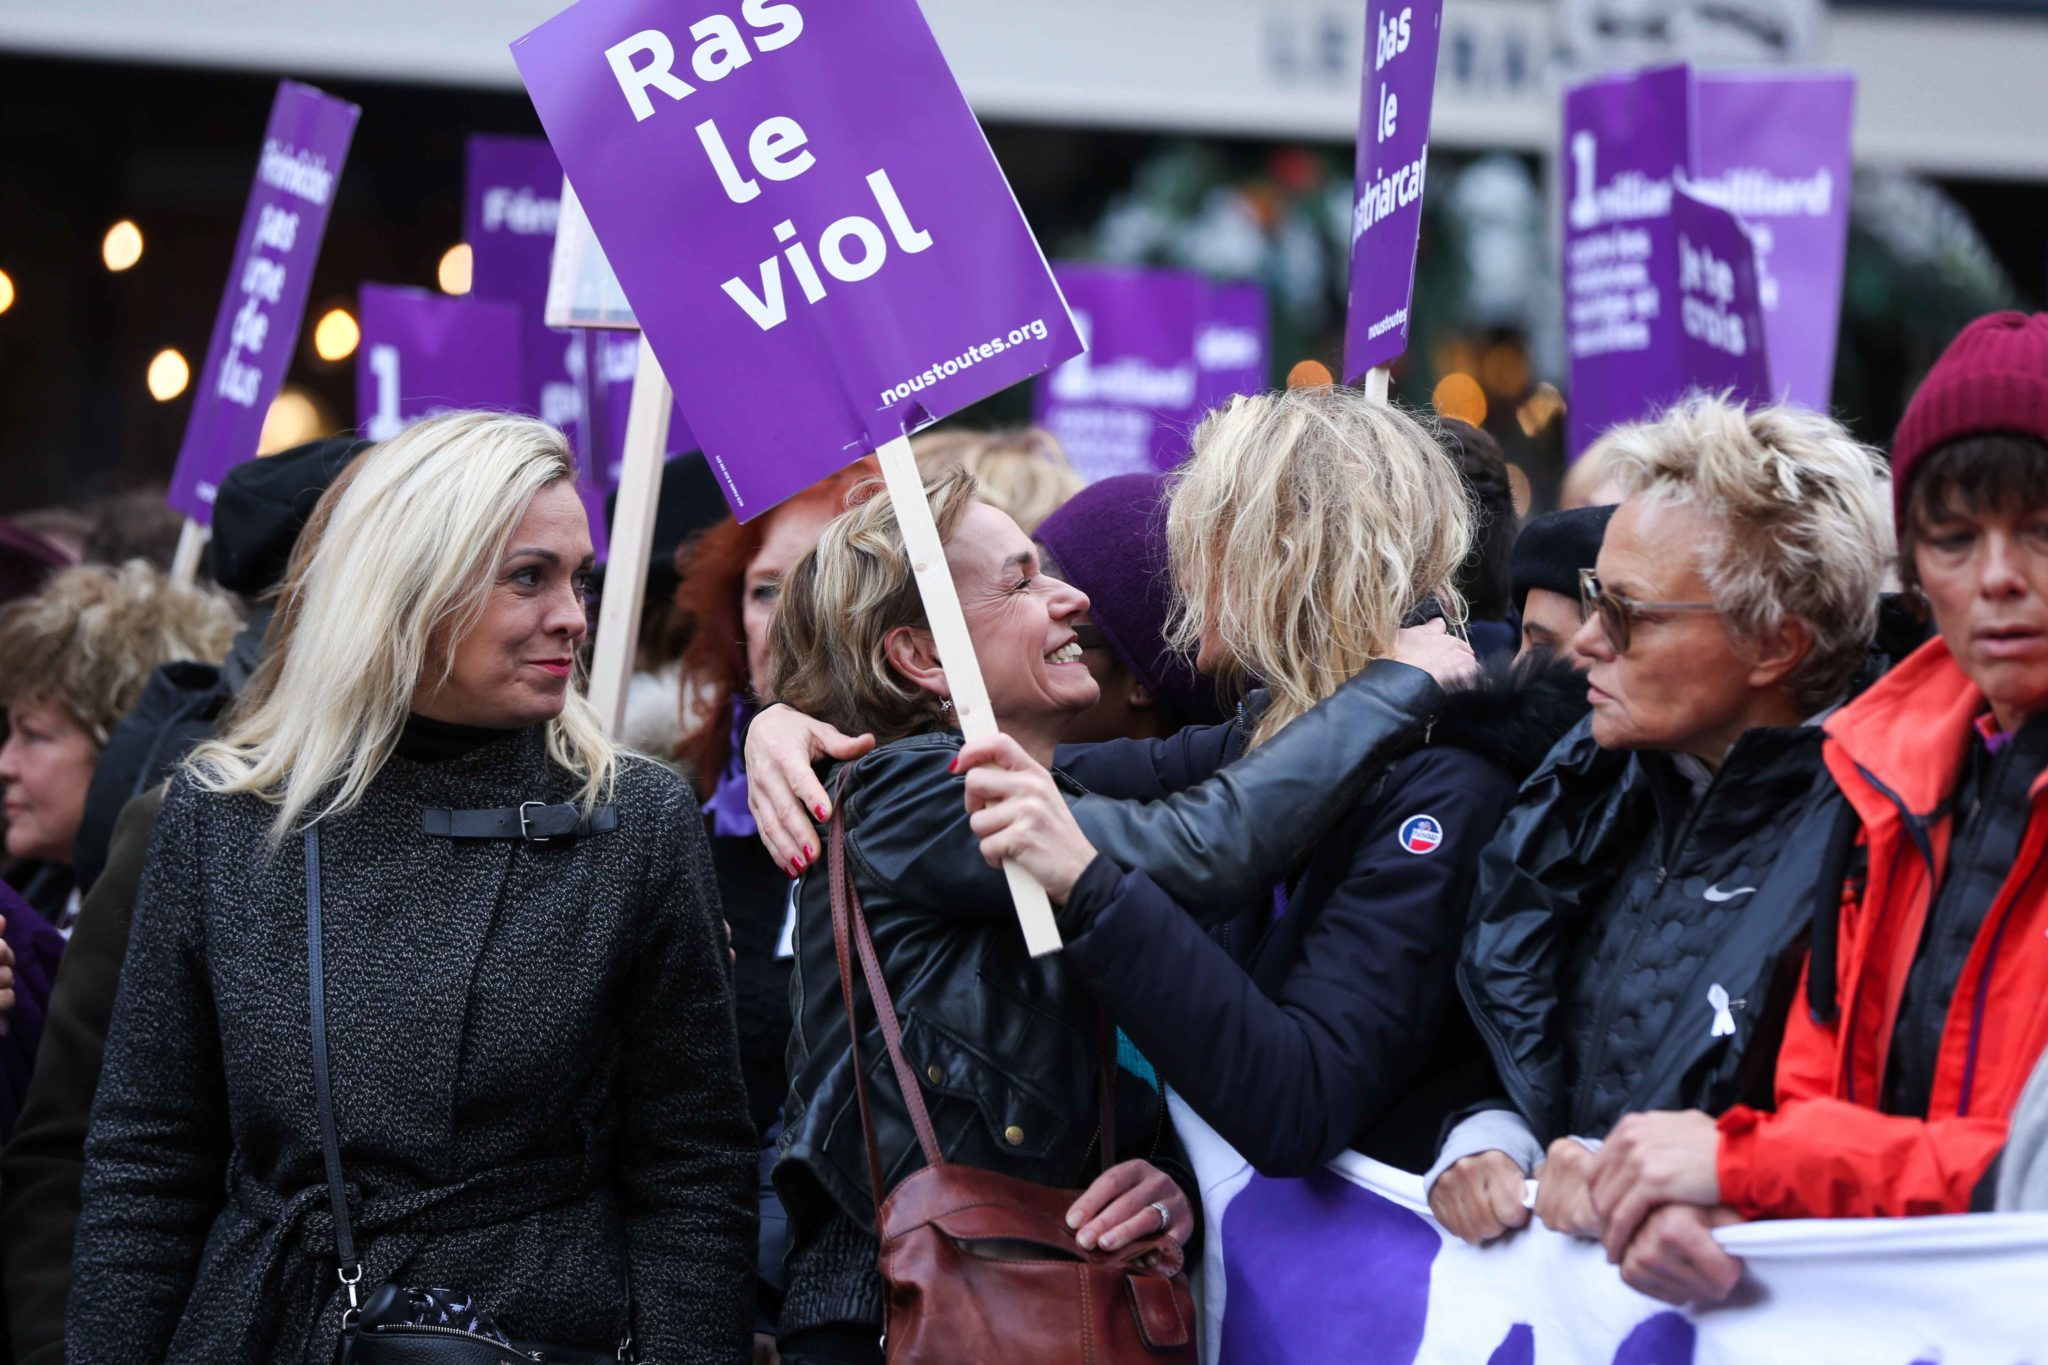 French actresses Sandrine Bonnaire  (4R) and Alexandra Lamy (3R) and French humorist and activist Muriel Robin (2R) take part in a protest to condemn violence against women, on November 23, 2019, in Paris. Wearing purple – the adopted colour of feminist